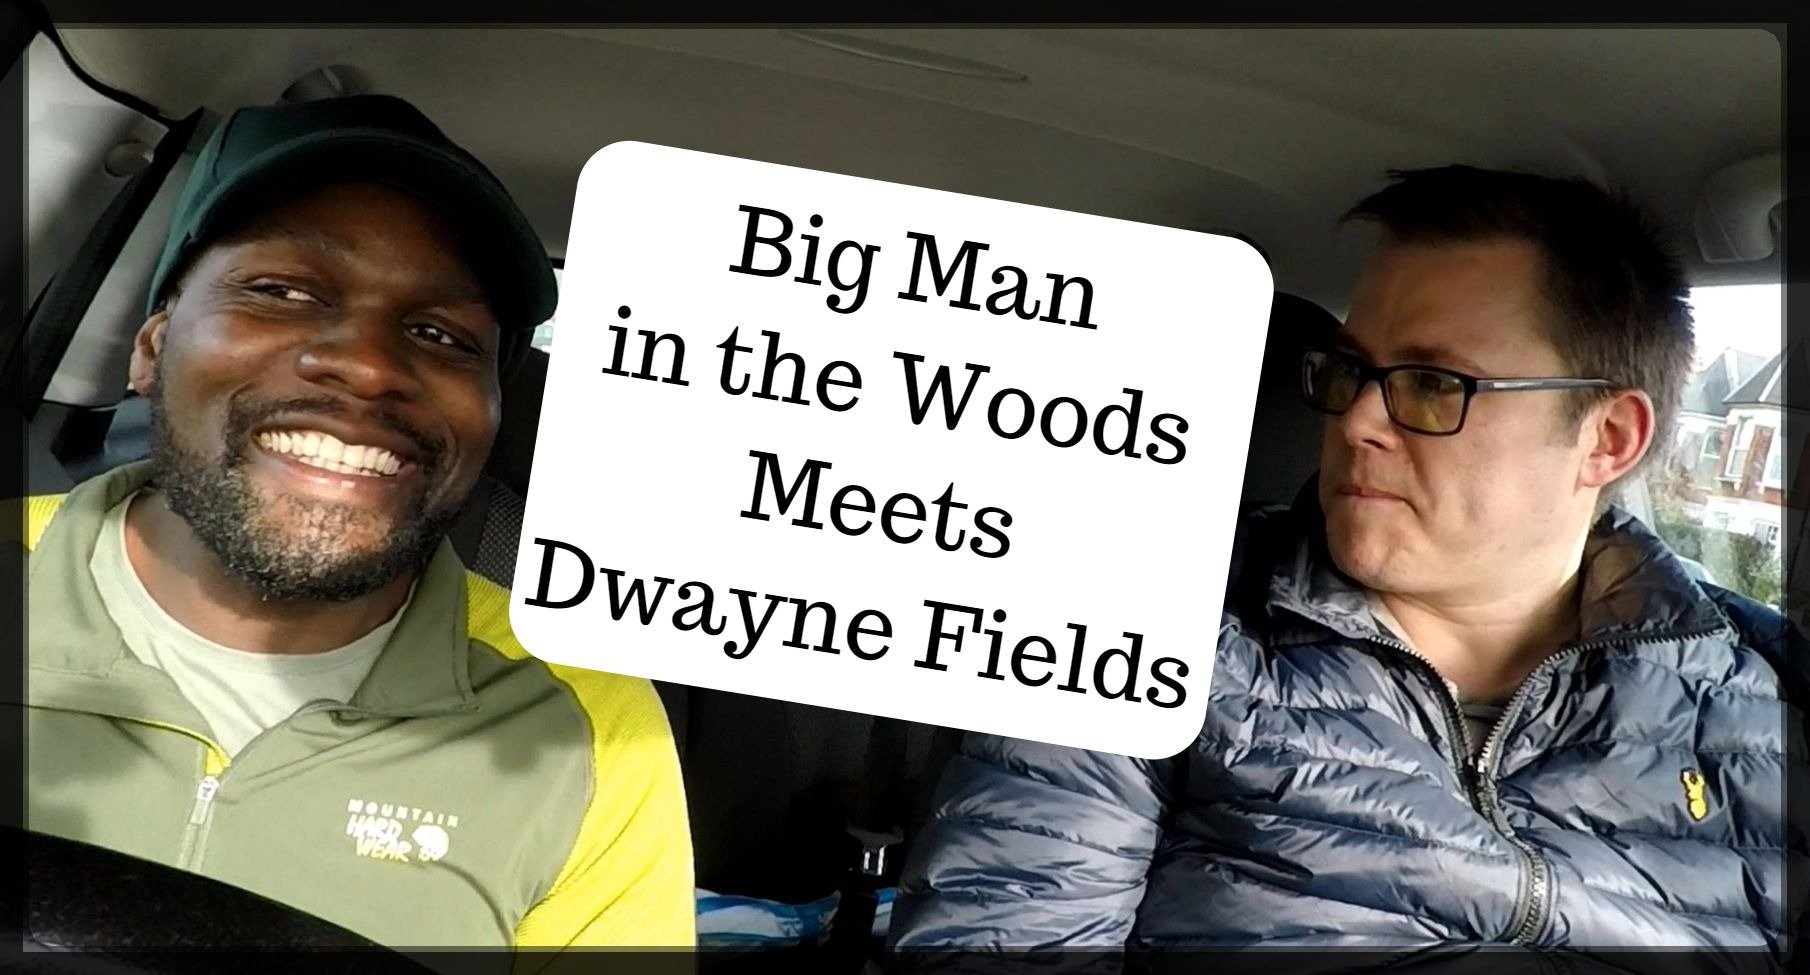 Big Man in the Woods meets Dwayne Fields